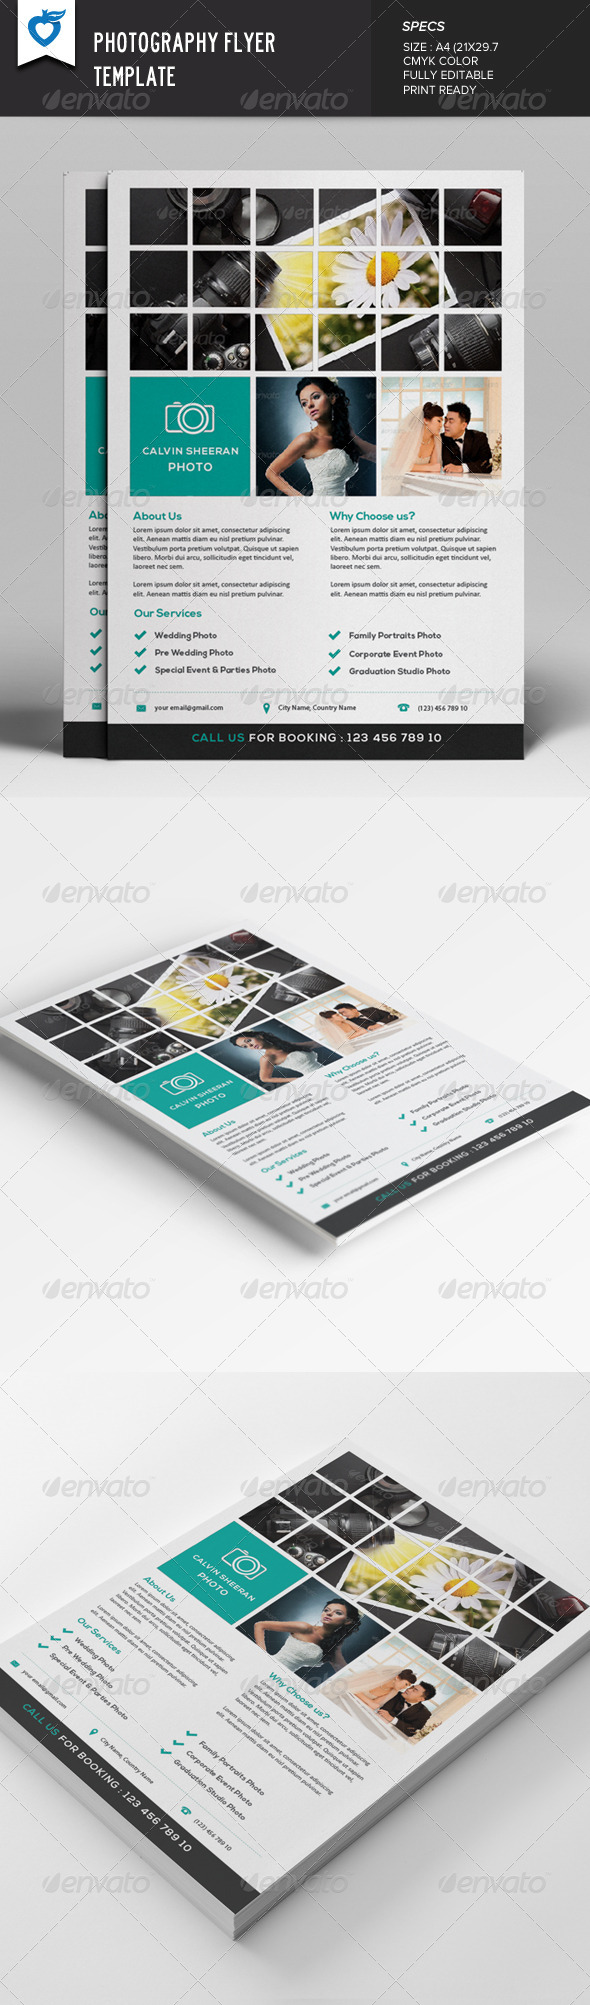 GraphicRiver Photography Flyer Template 7670531